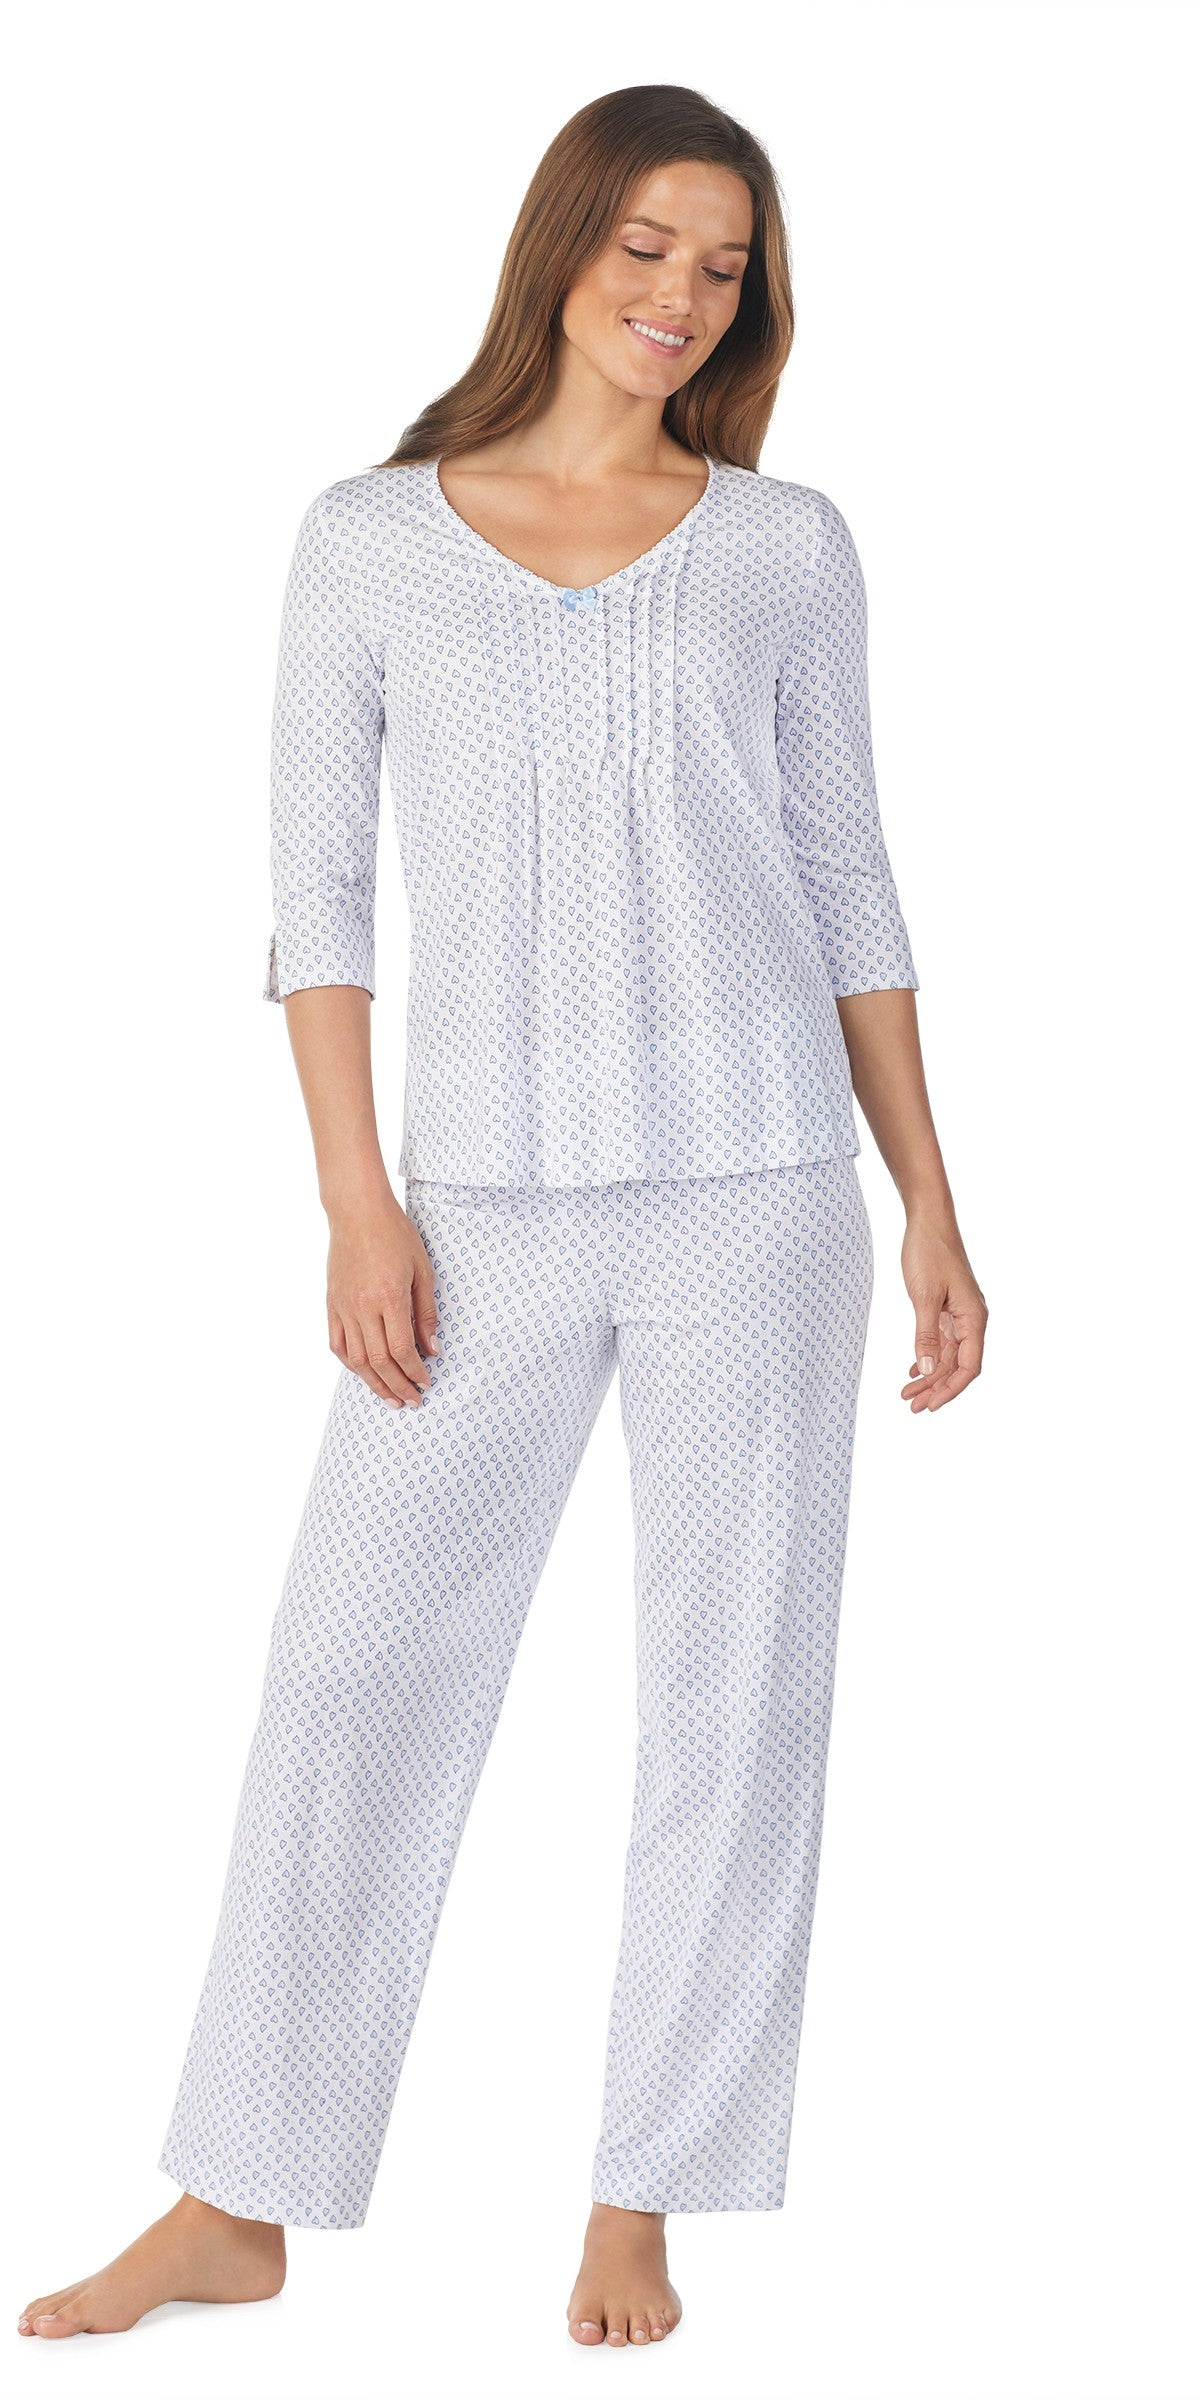 Hearts Soft Jersey 3/4 Sleeve, Long Pant PJ Set